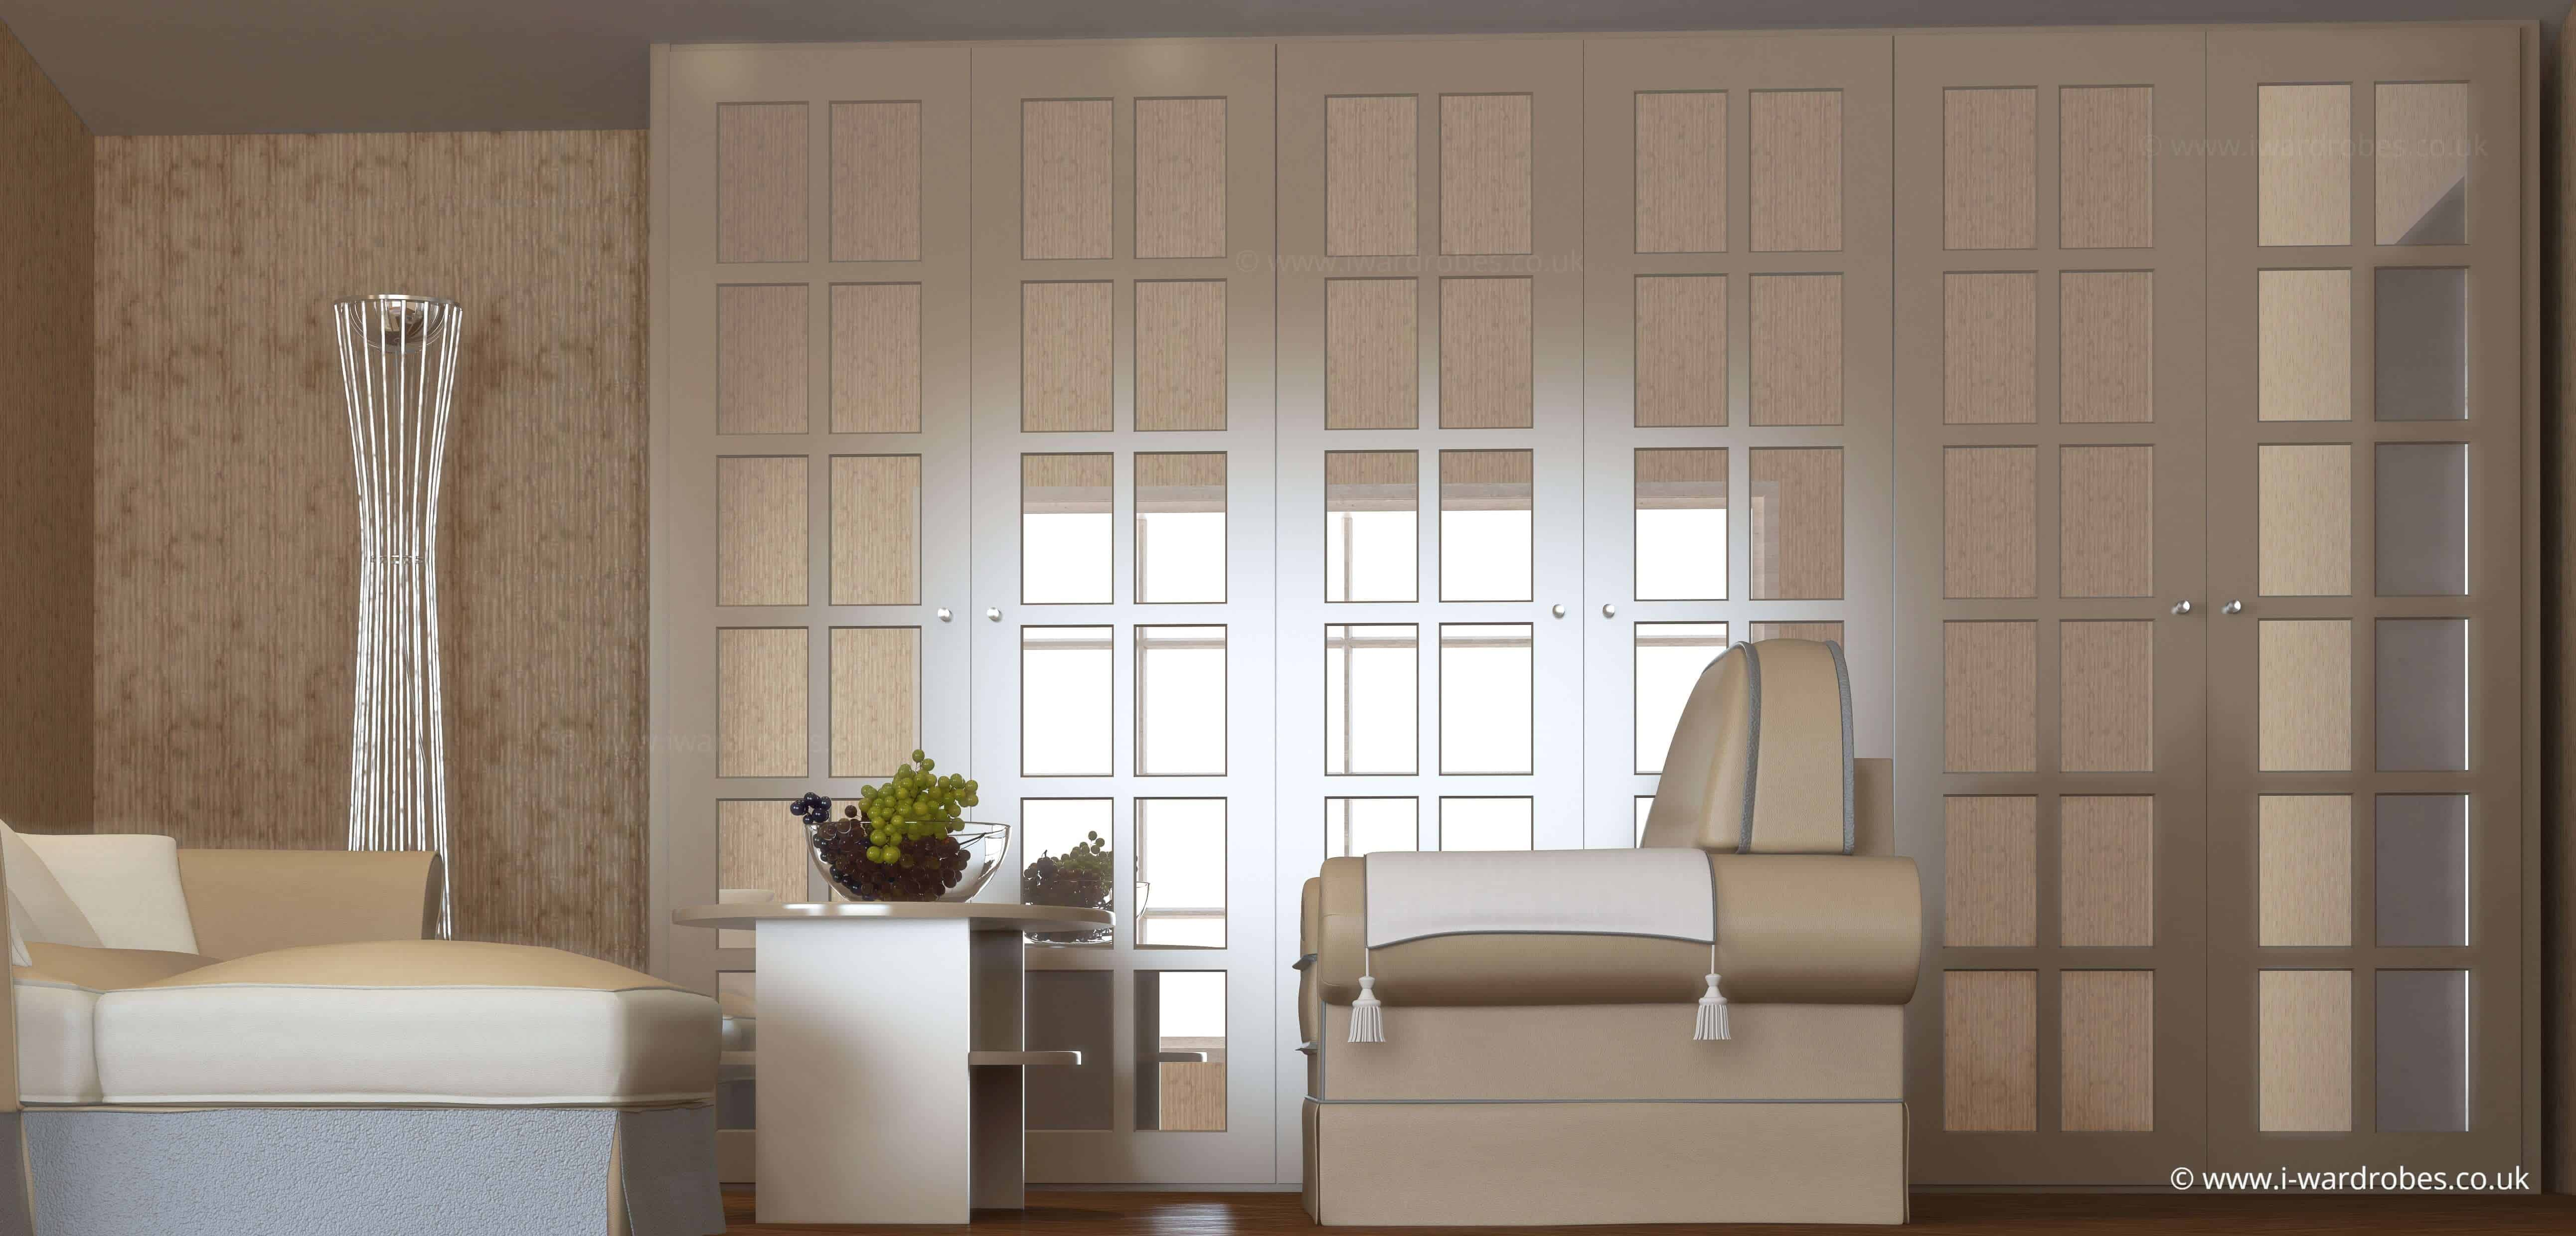 Bespoke Wardrobes Walk In Wardrobes Fitted Bedrooms Bespoke Home Office